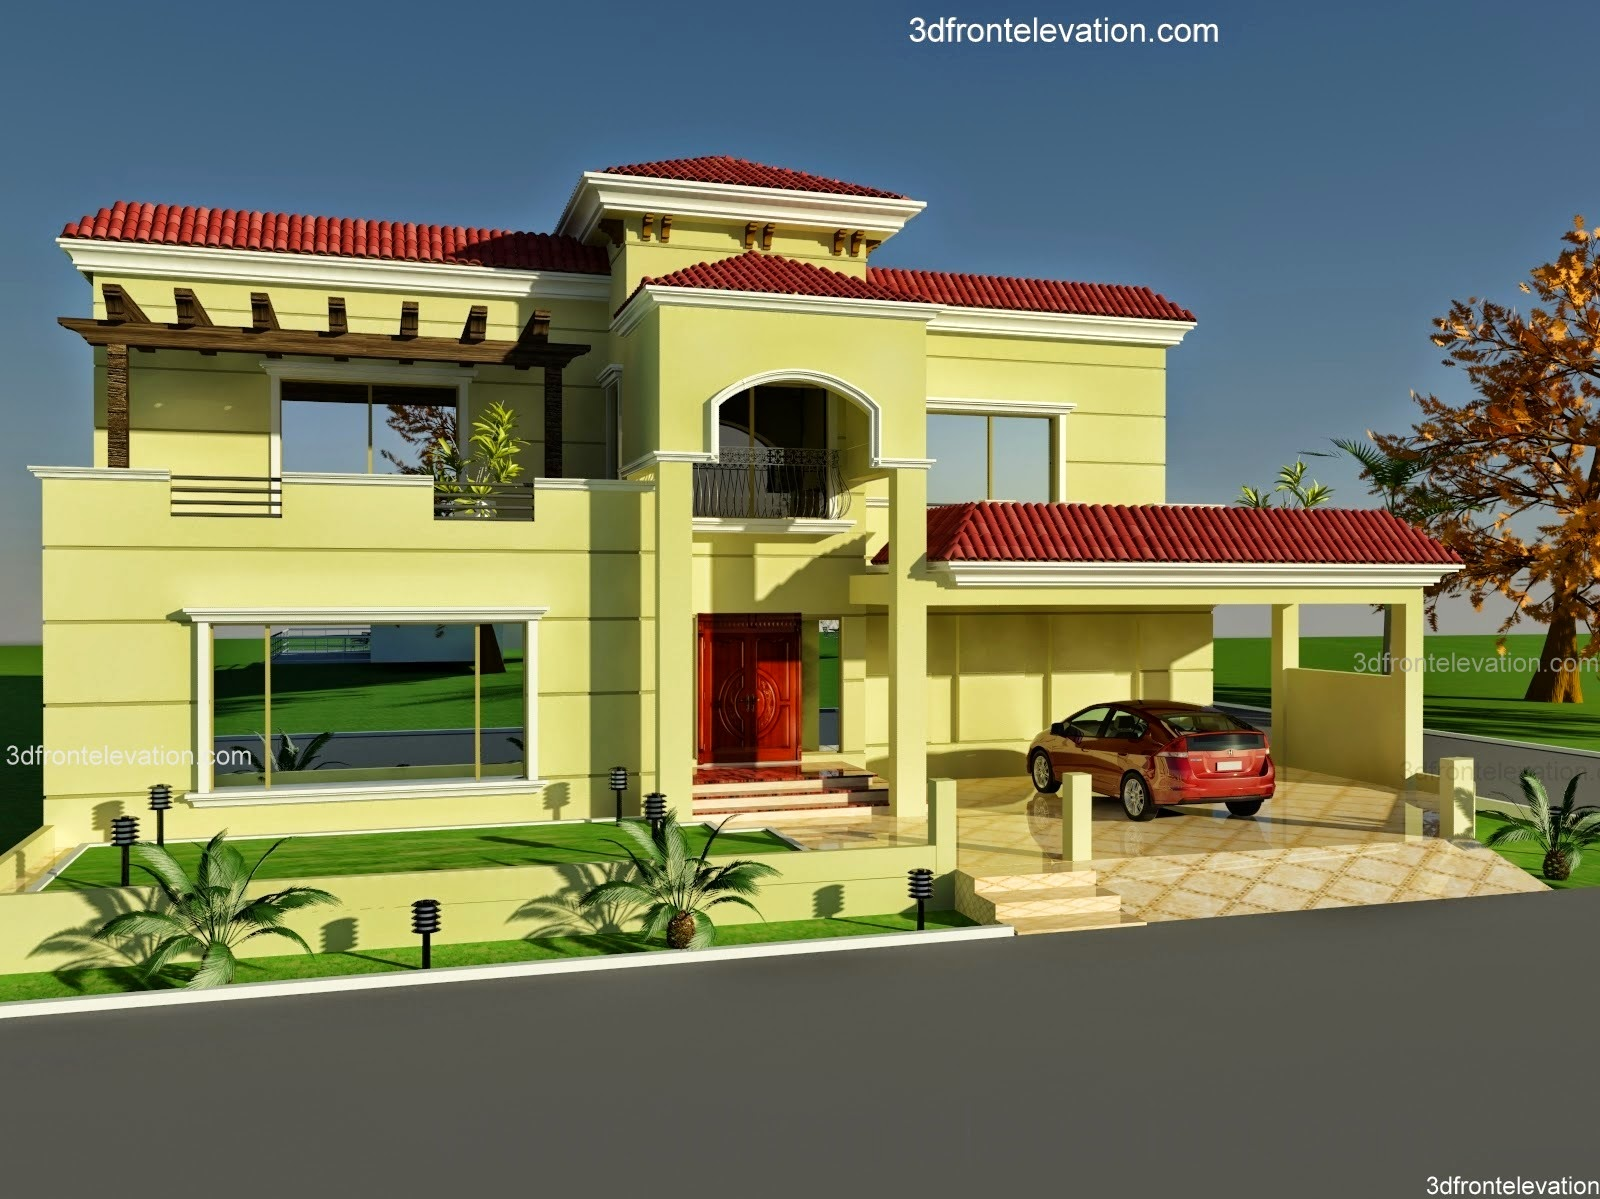 3d Front Elevation Com  Wapda Town 1 K